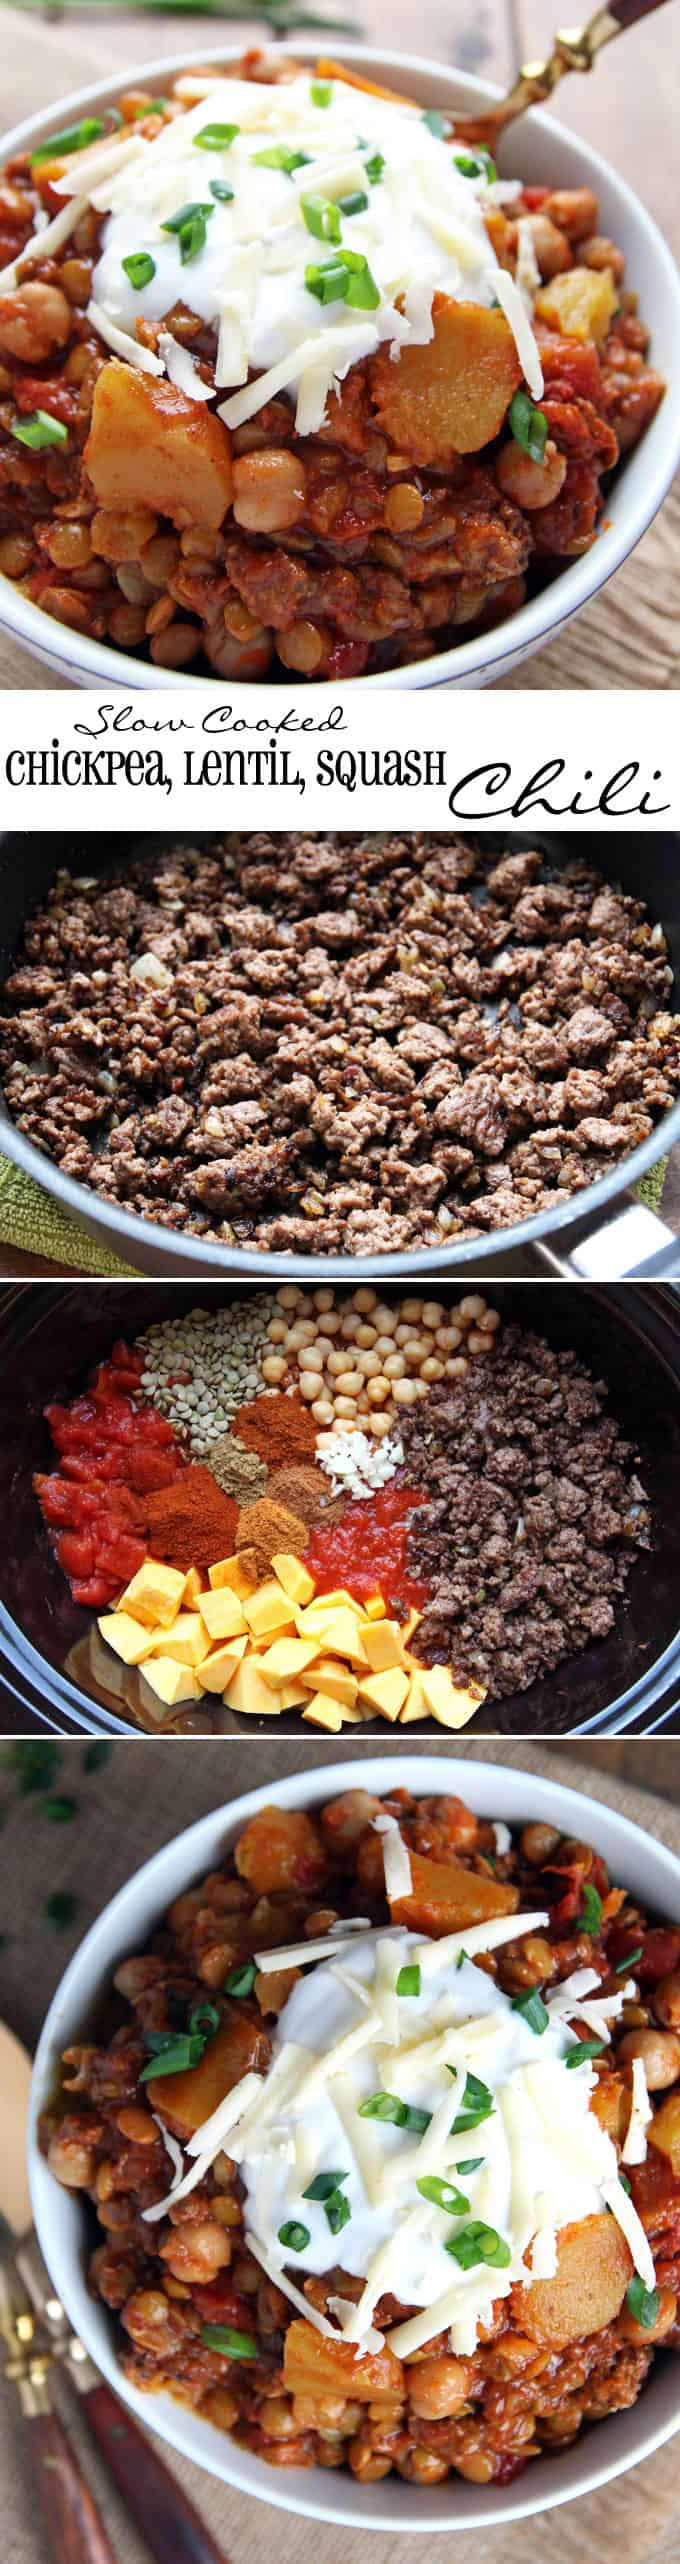 Slow Cooked Lentil Chickpea Chili with Squash